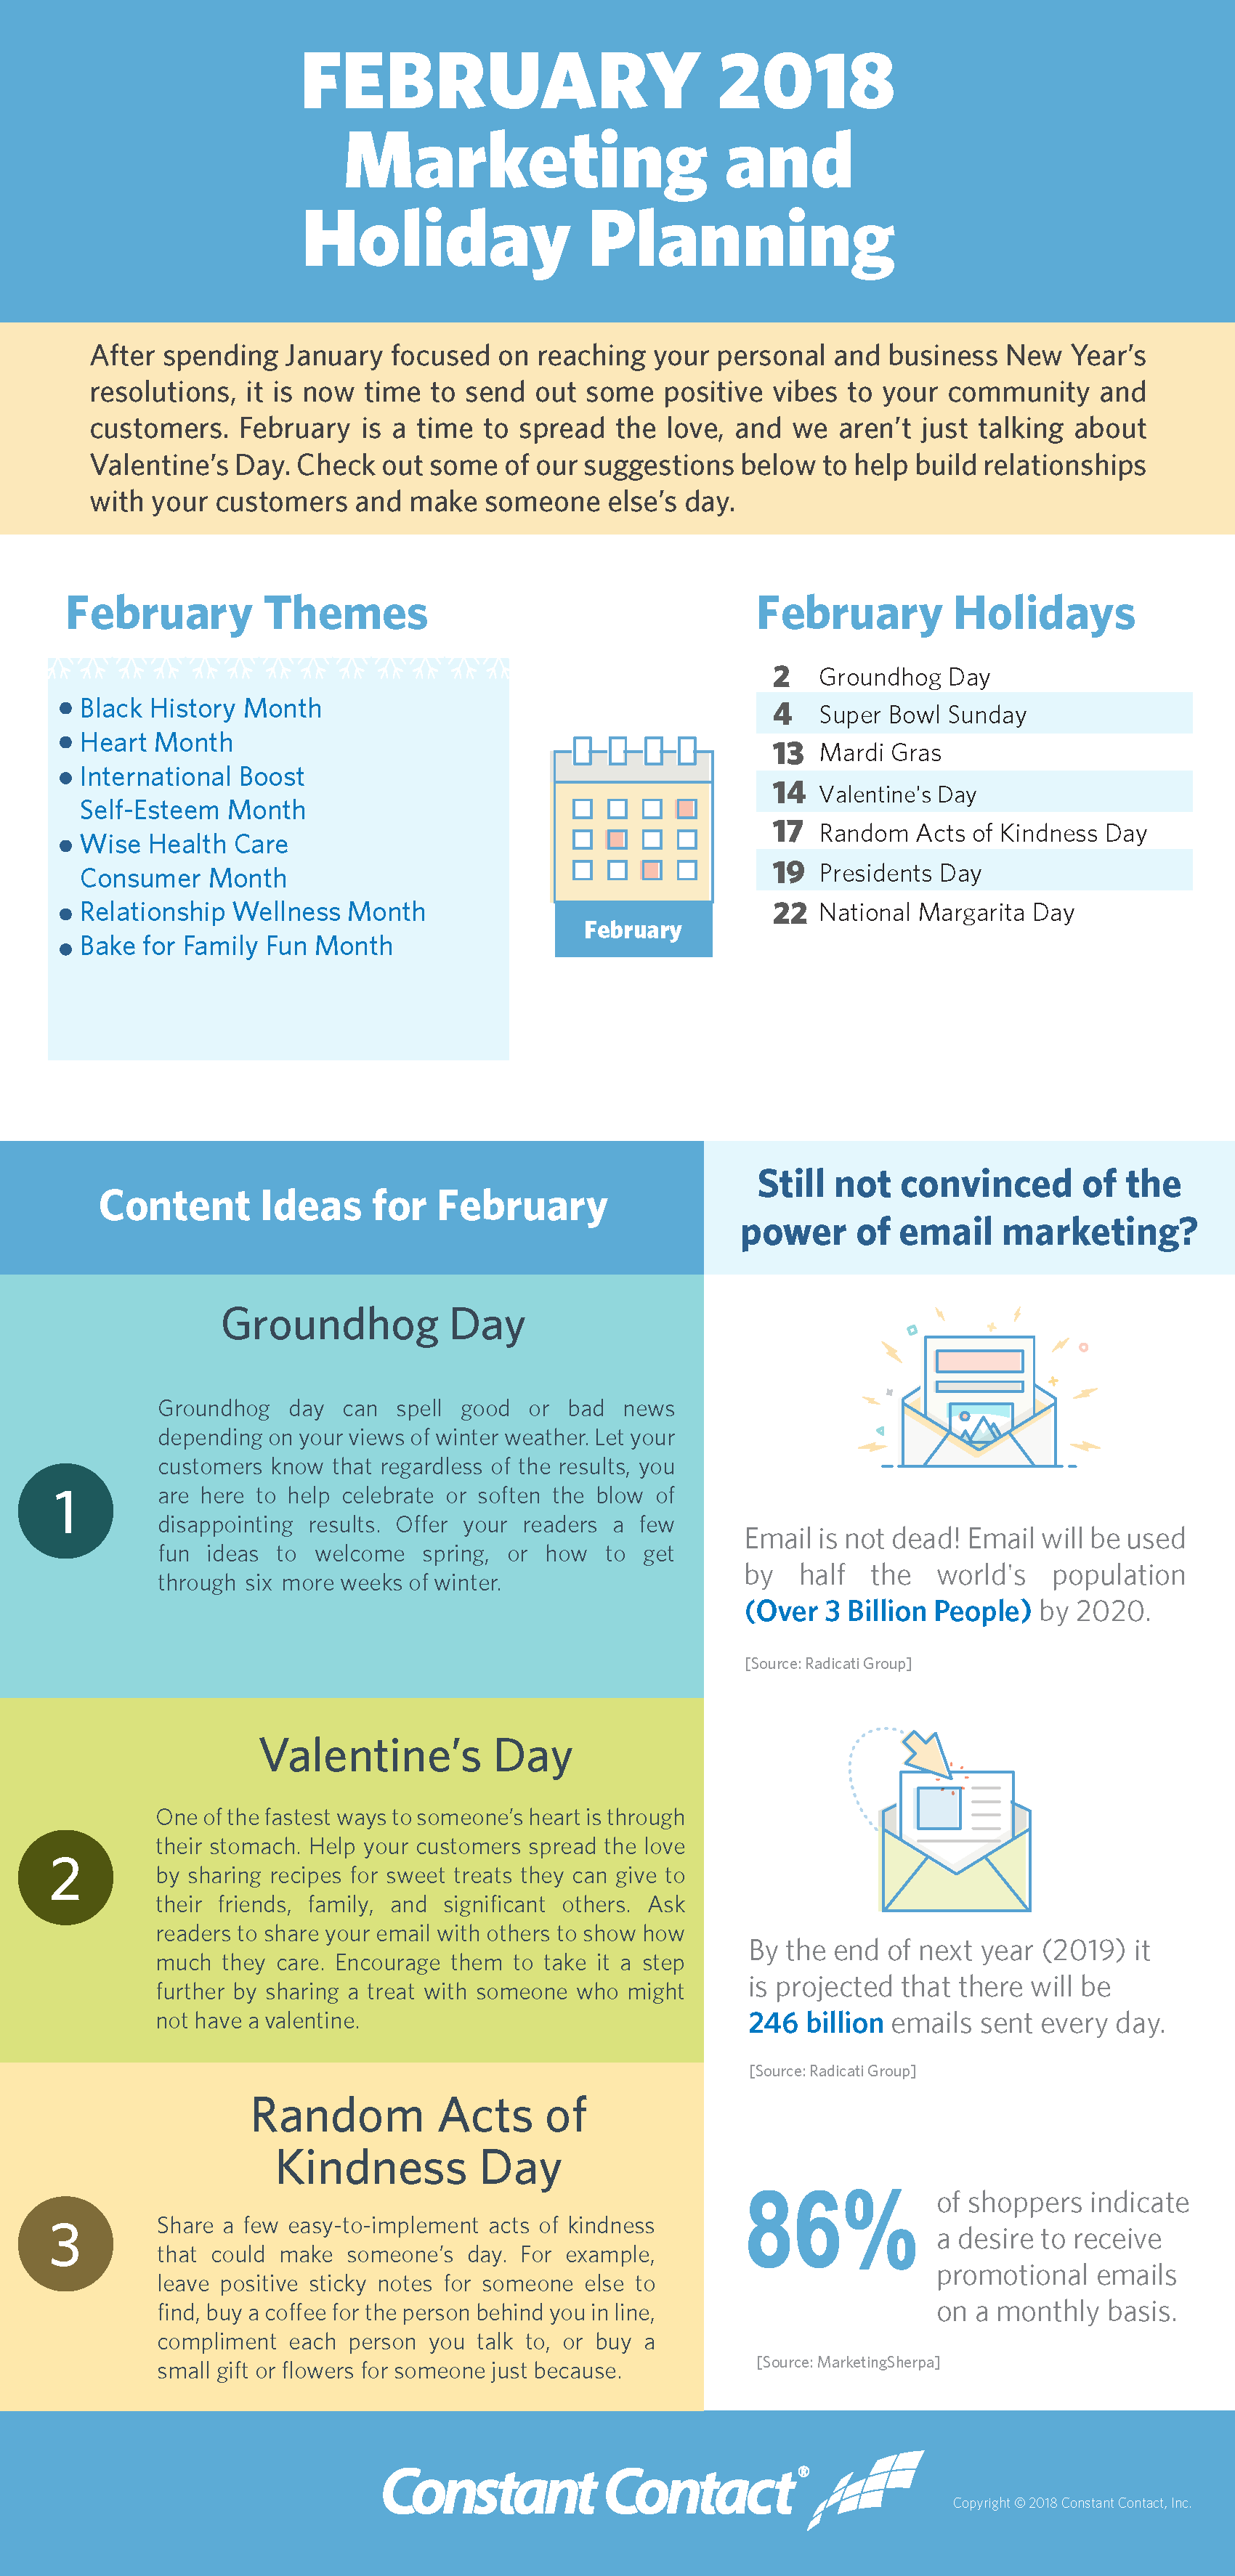 February 2018 Marketing and Holiday Planning | Constant Contact Blogs